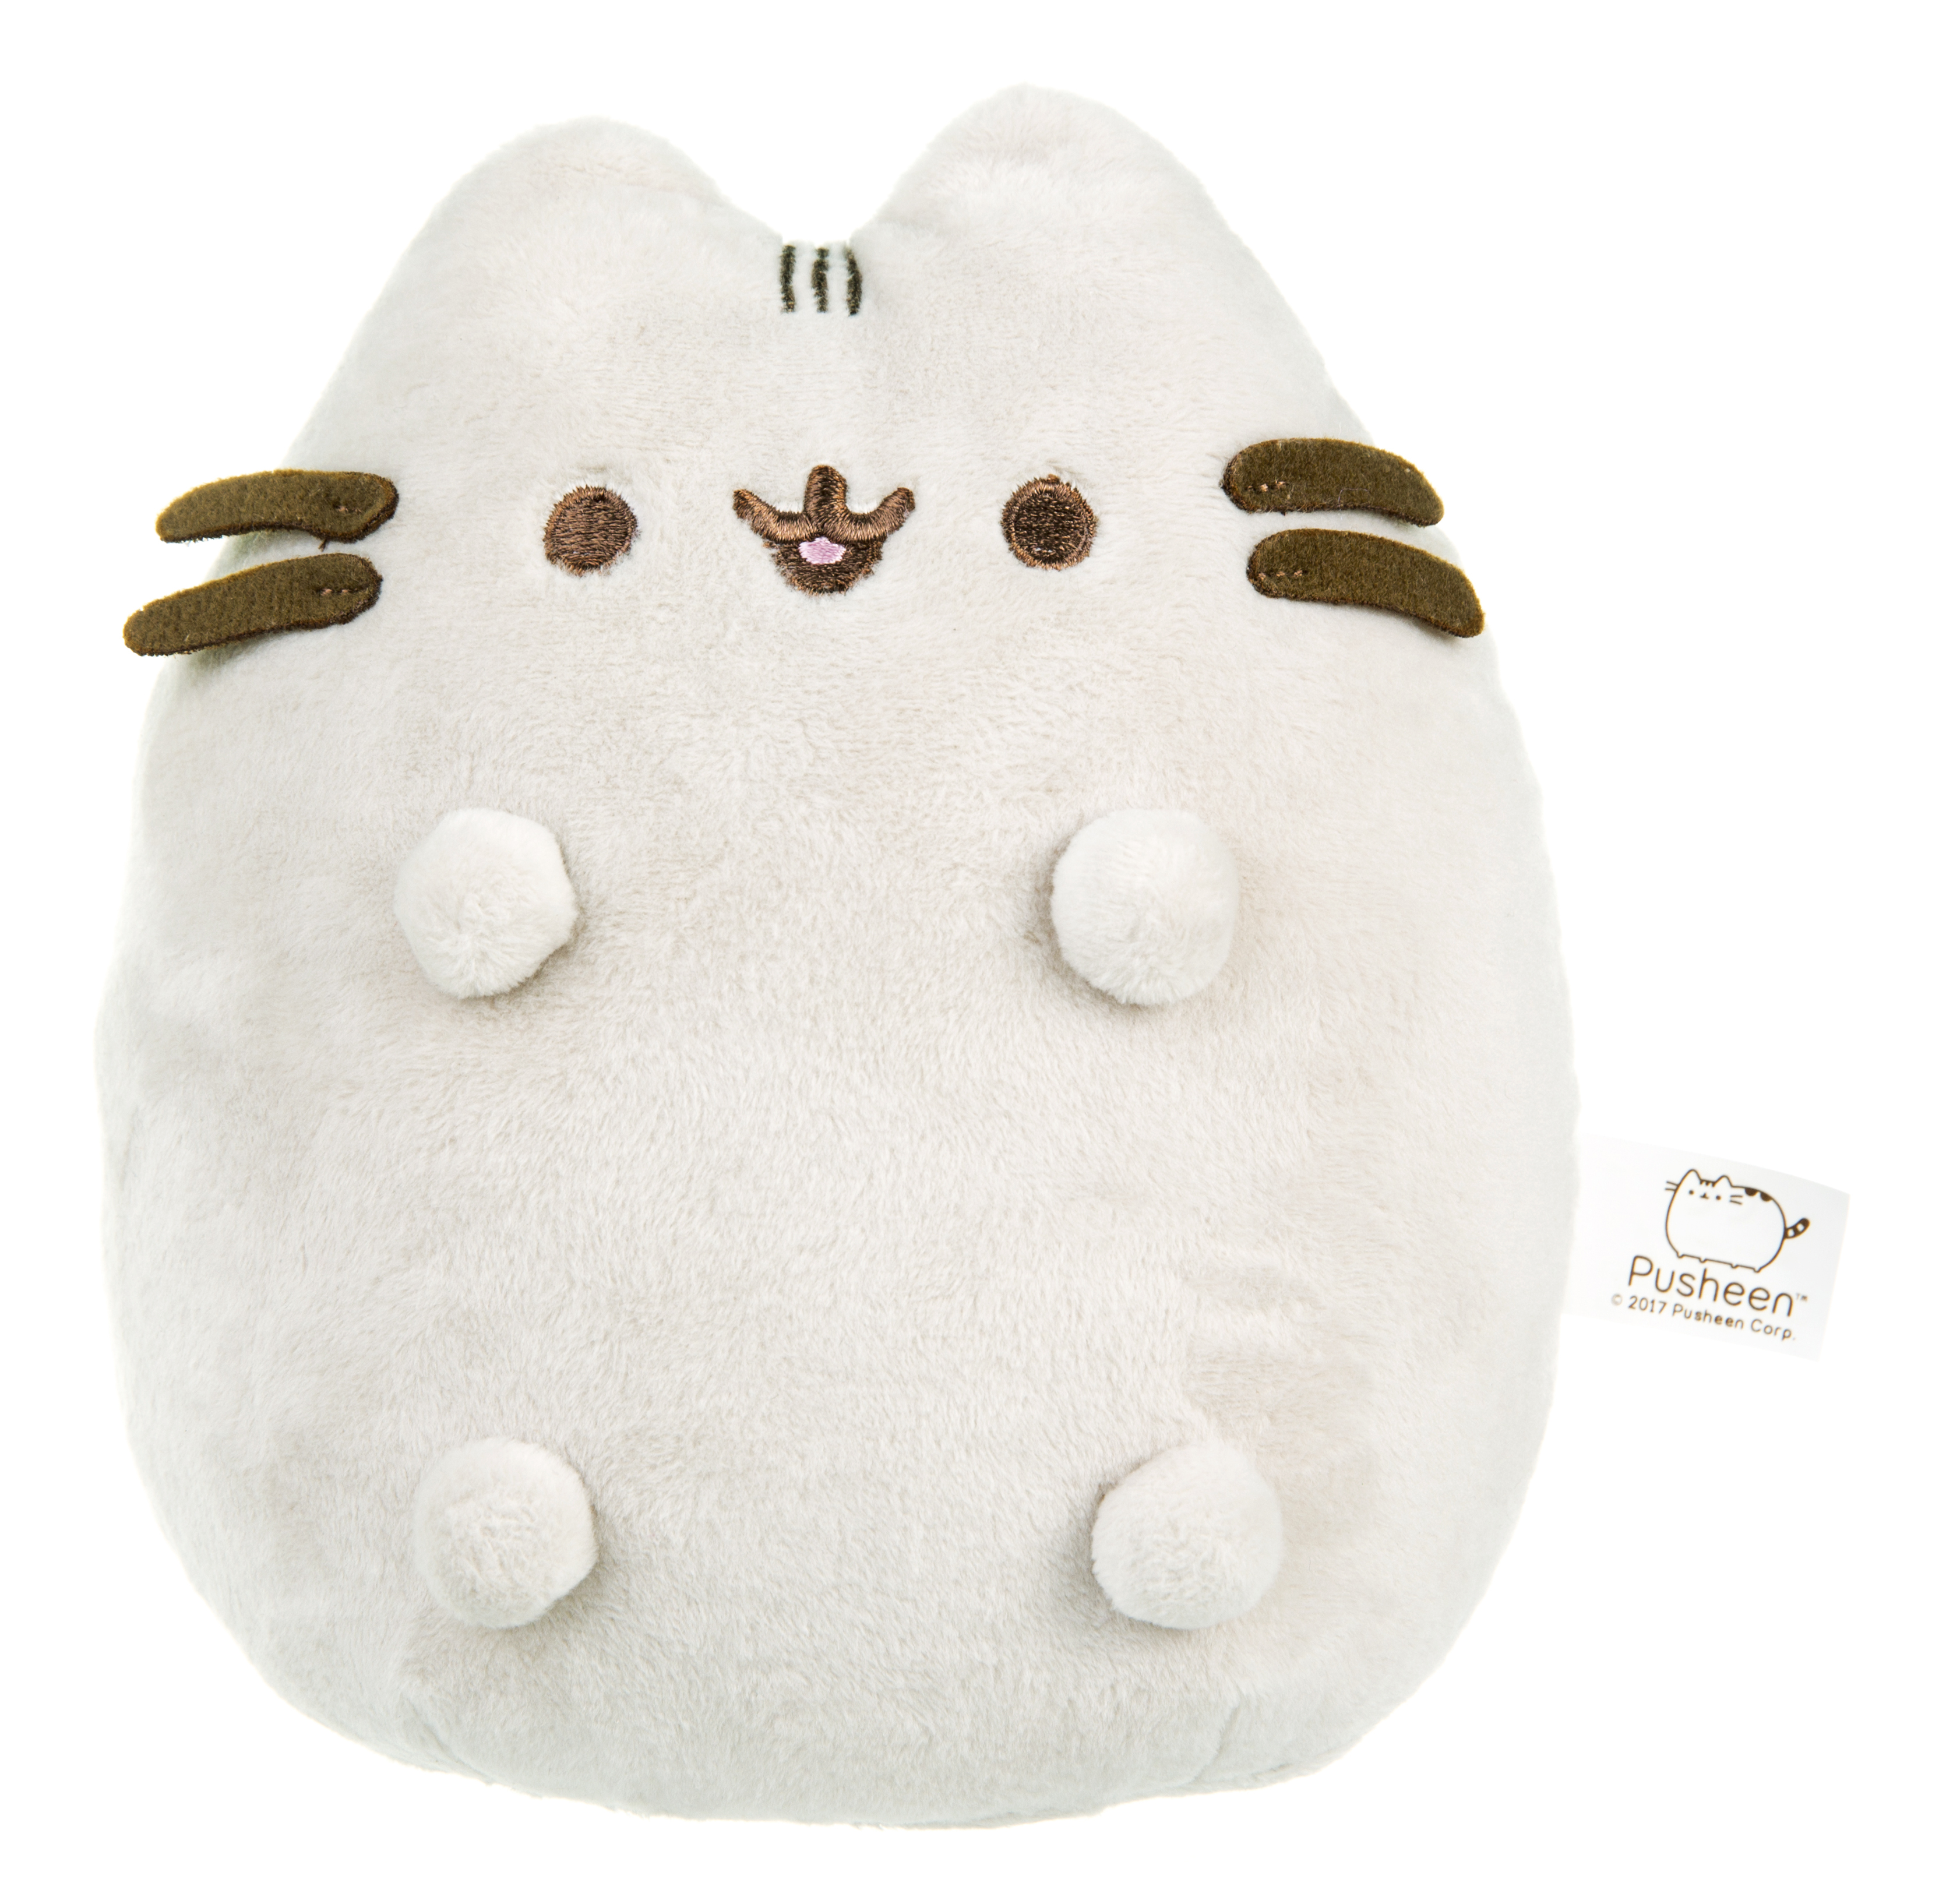 Pusheen 3D Plush Door Stop   Made From Super Soft Plush   Filled With 800g  Weighted Beads   Includes Embroidered Features And 3D Ears And Whiskers